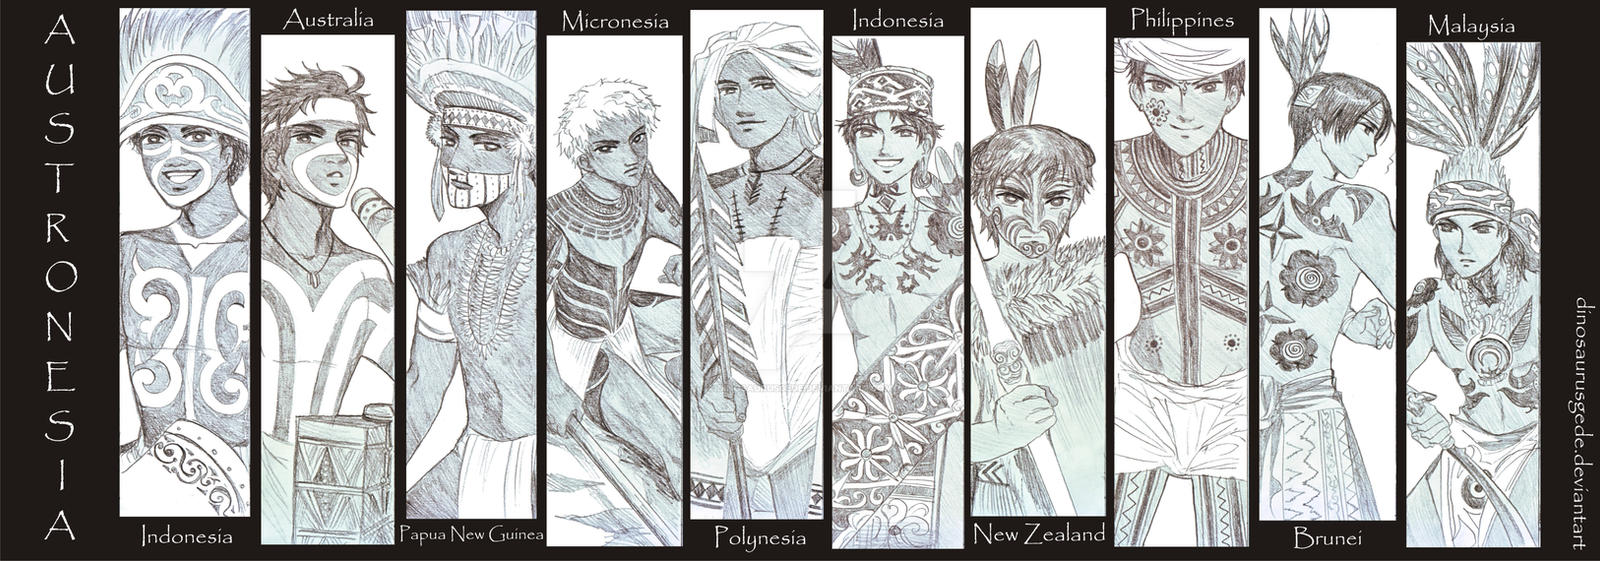 Austronesia Hetalia Ocs Tattoo By Dinosaurusgede On